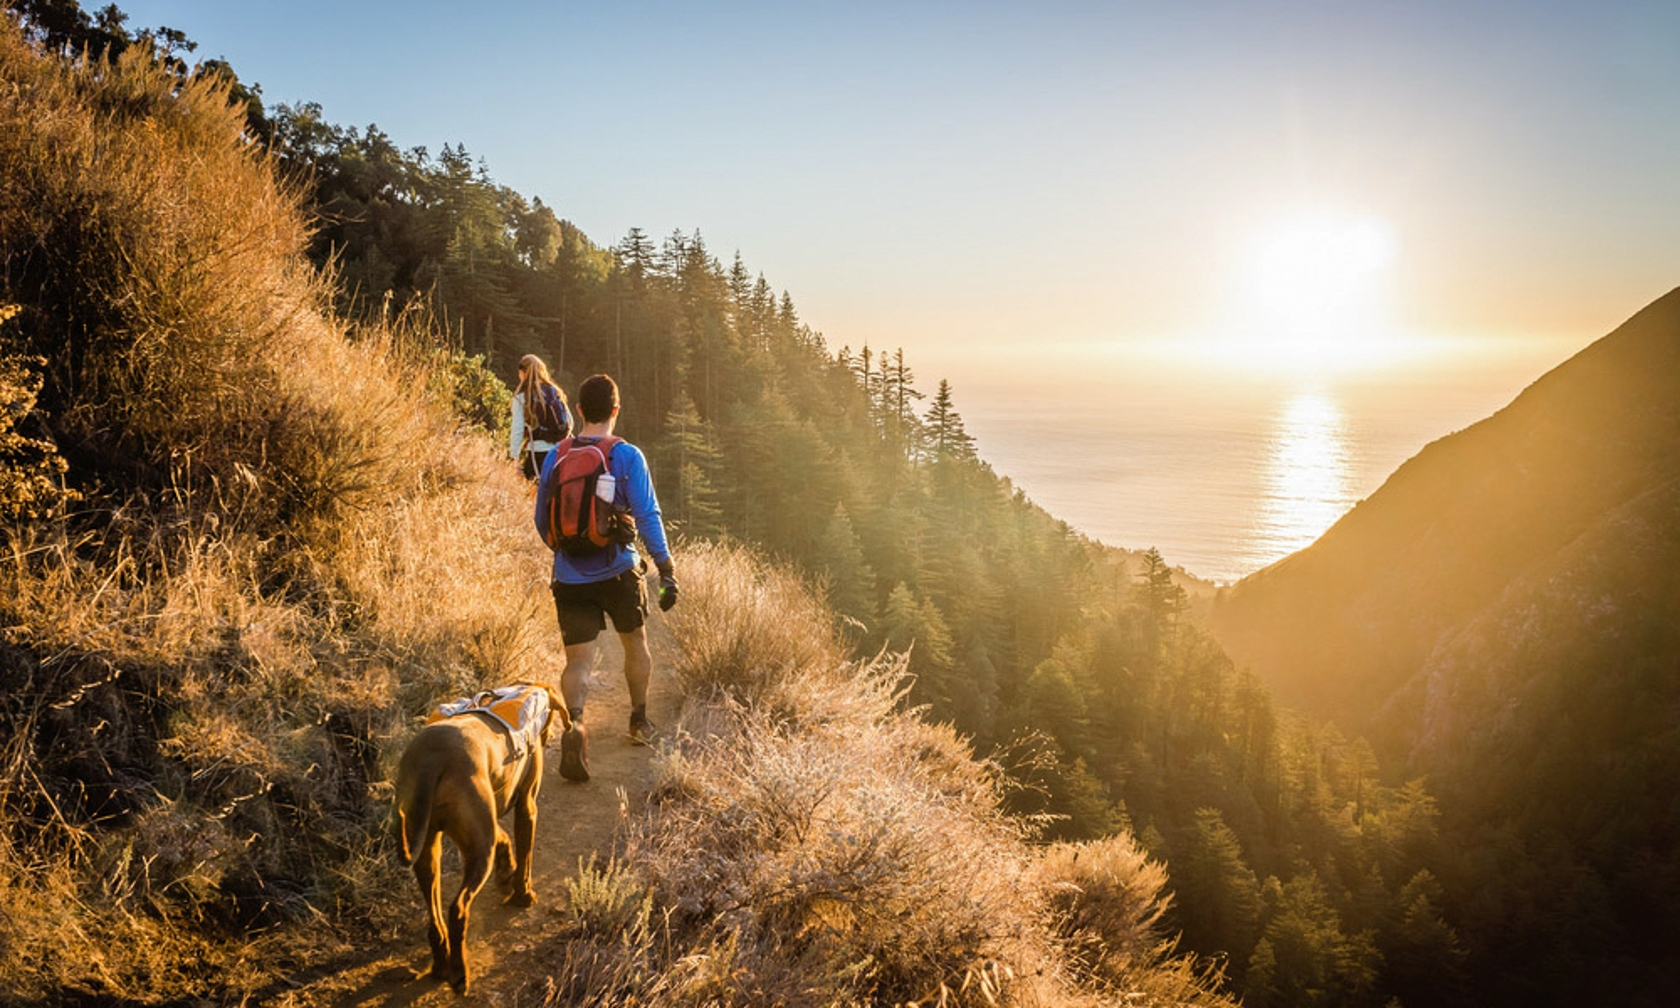 Cabin and lodging rentals in Big Sur